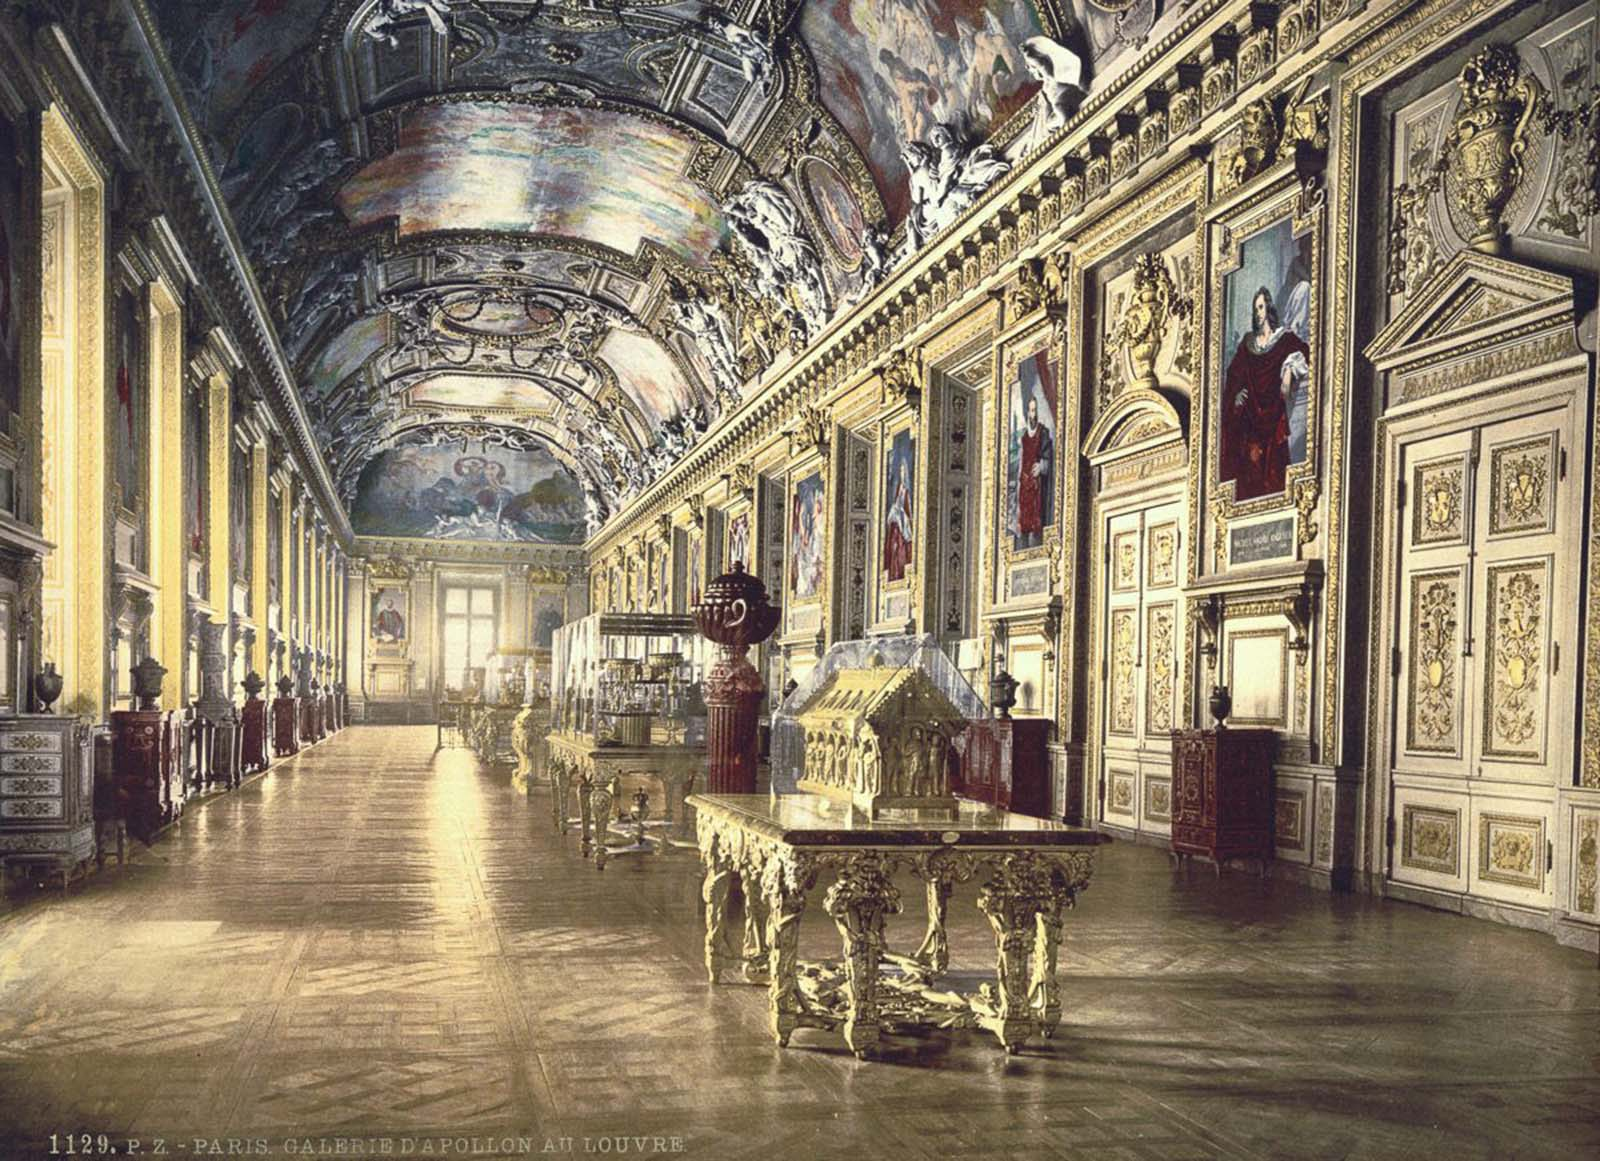 A gallery in the Louvre, Paris.